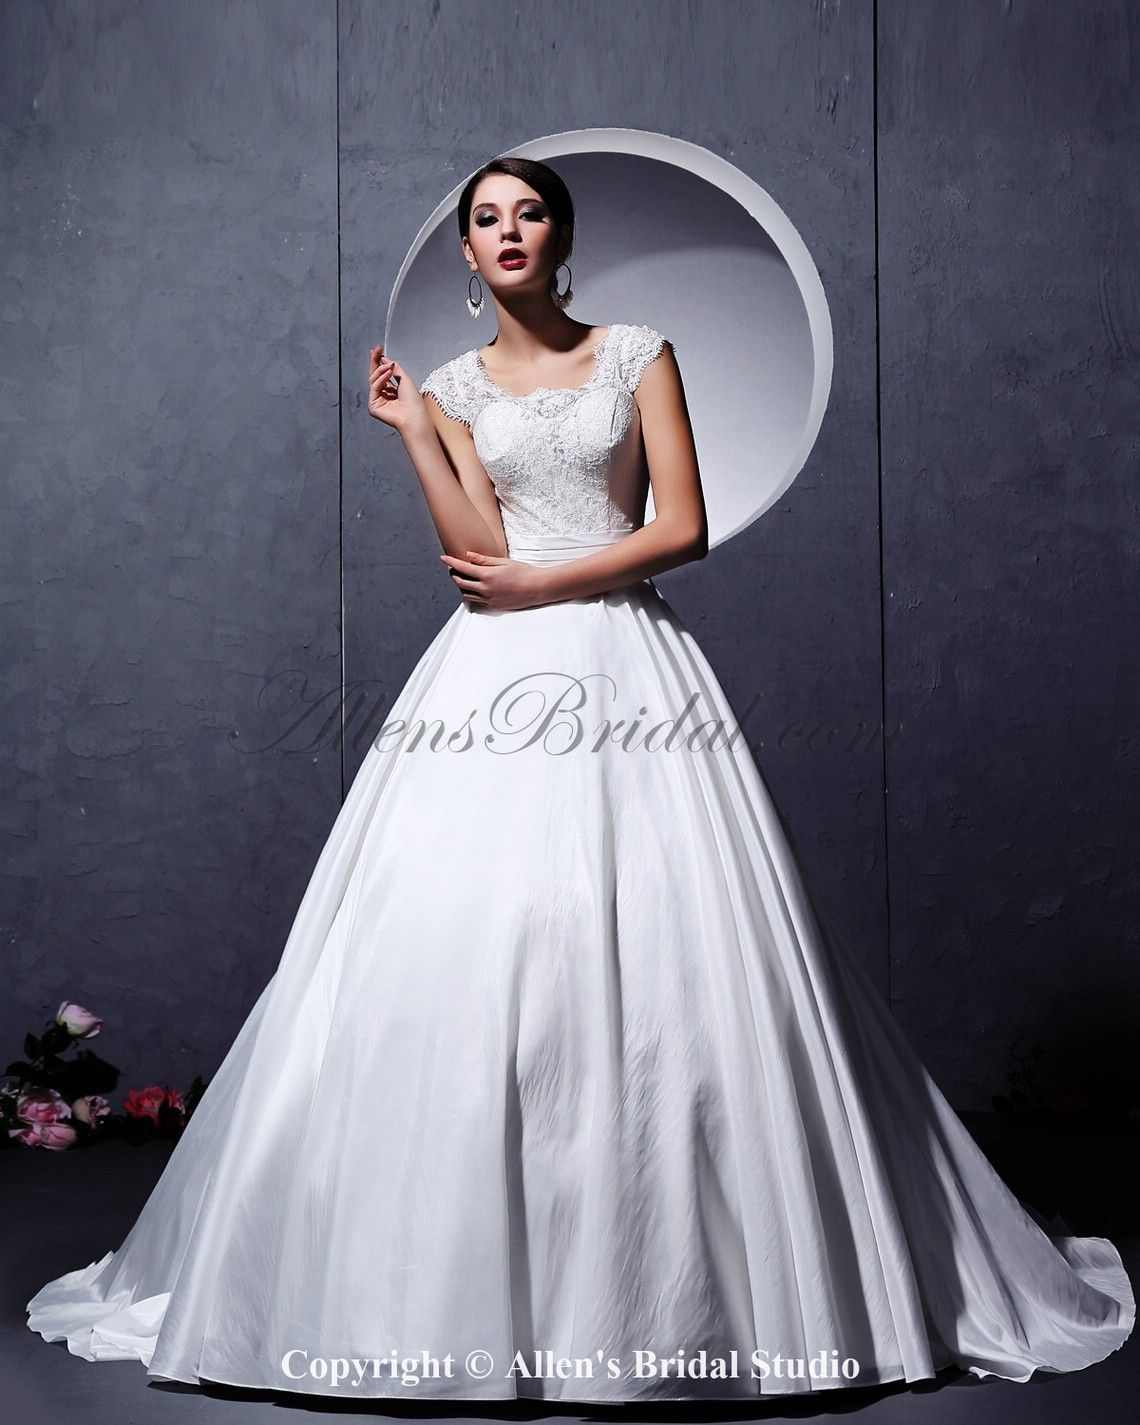 Satin and Lace Square Neckline Chapel Train Ball Gown Wedding Dress with Embroidered on sale at affordable prices, buy Satin and Lace Square Neckline Chapel Train Ball Gown Wedding Dress with Embroidered at AllensBridal.com now!